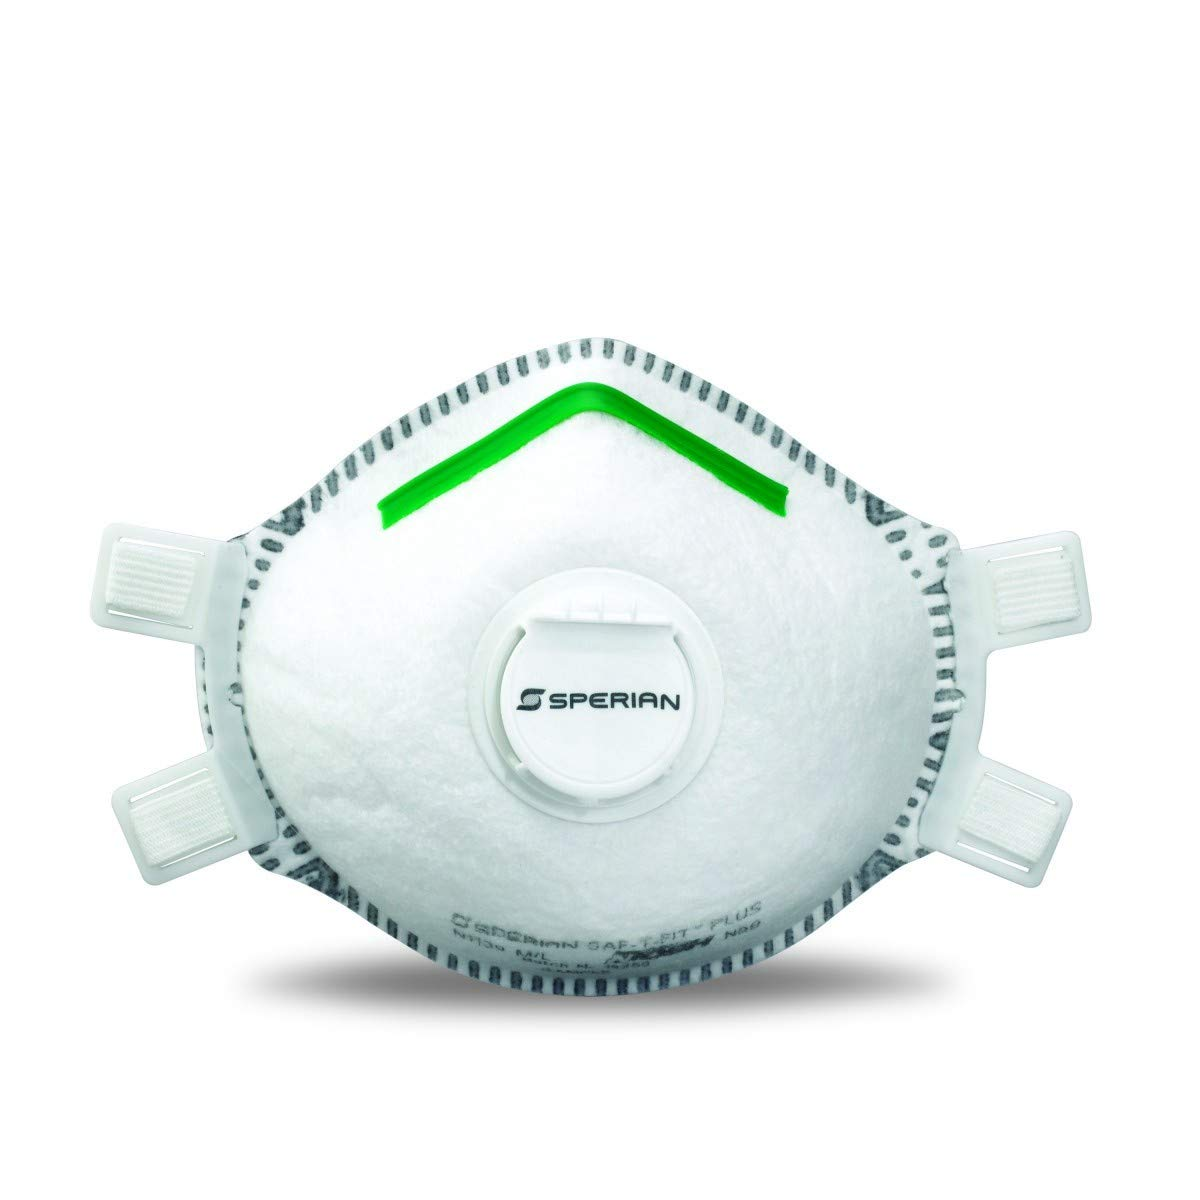 Honeywell 14110403 N1139 N99 SAF-T-FIT Plus Particulate Respirator with Full Face Seal and Valve, Molded Cup, Medium/Large (Pack of 10)